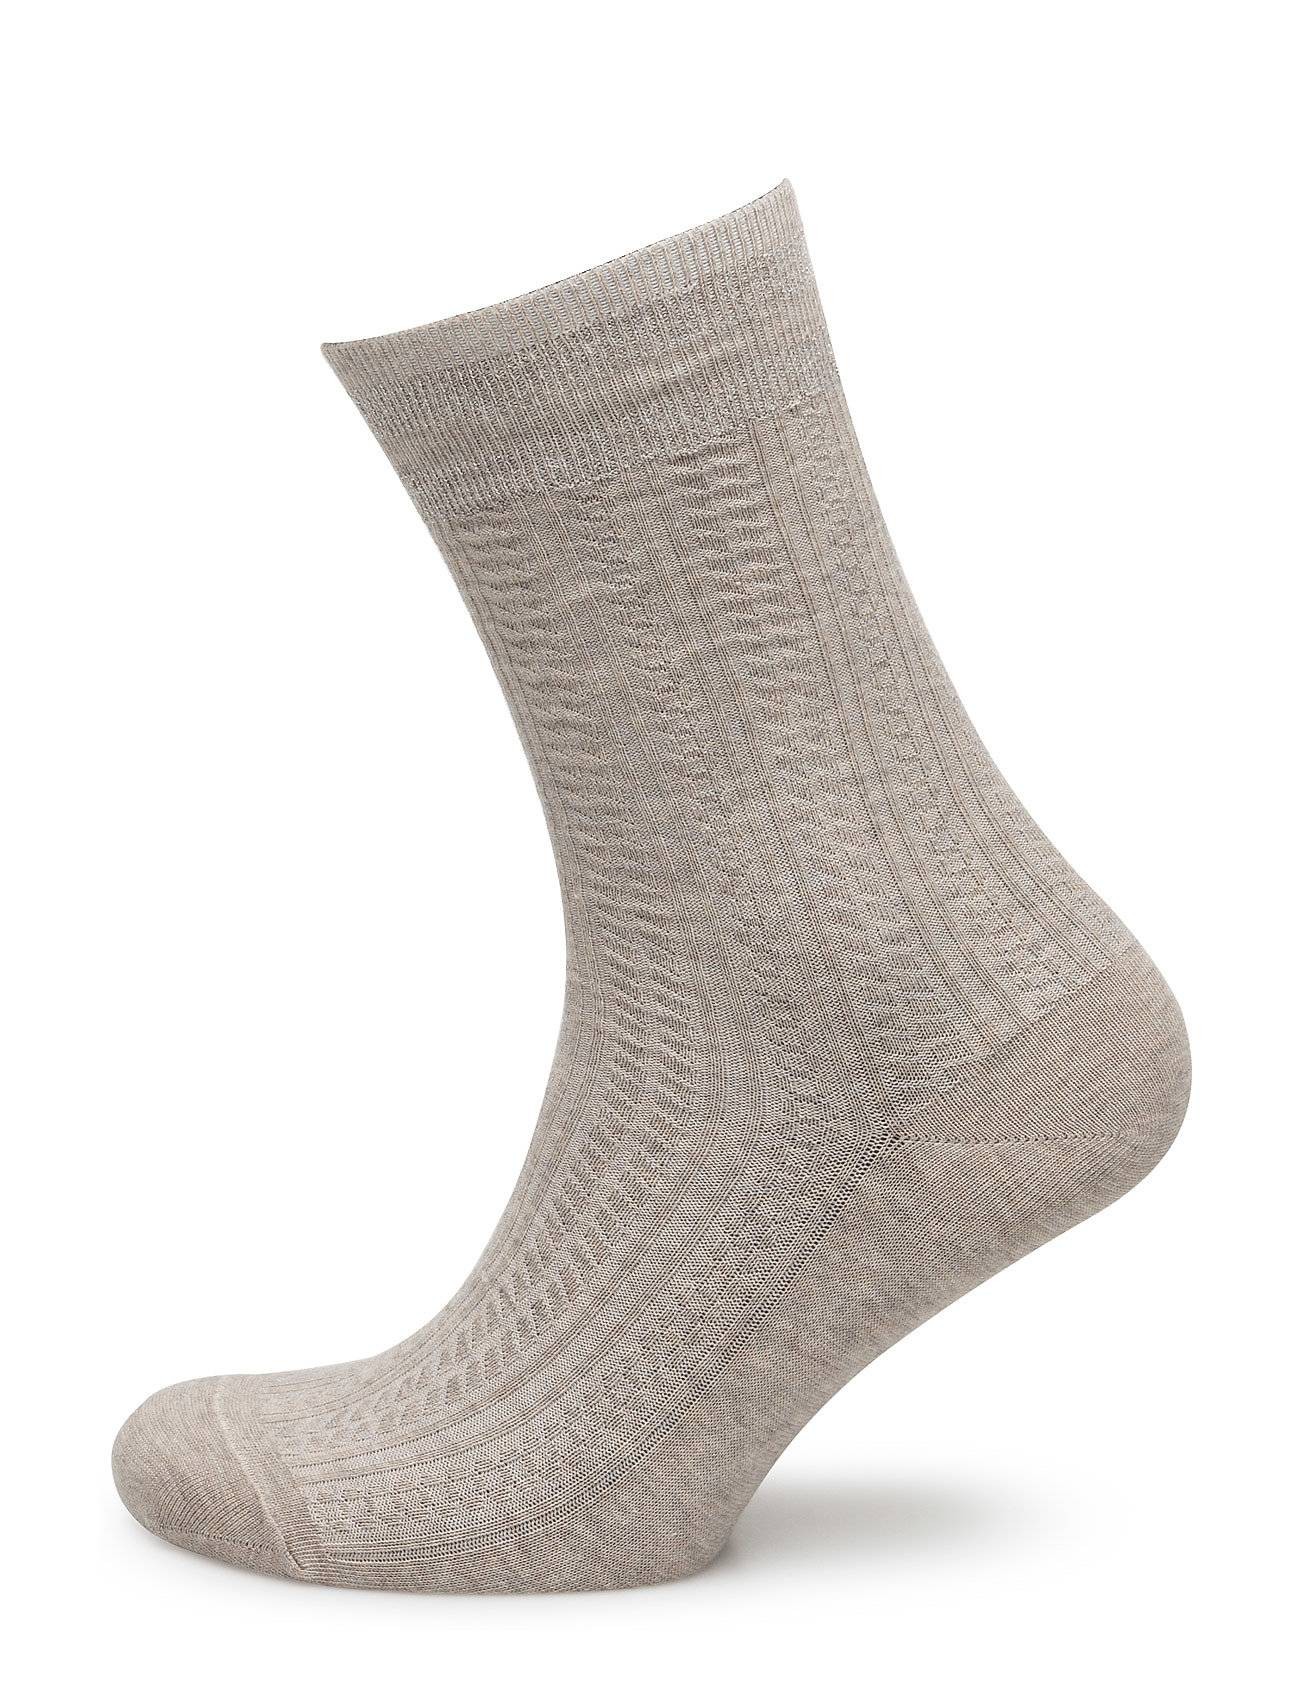 Vogue Ladies Anklesock, Grace Cable Sock